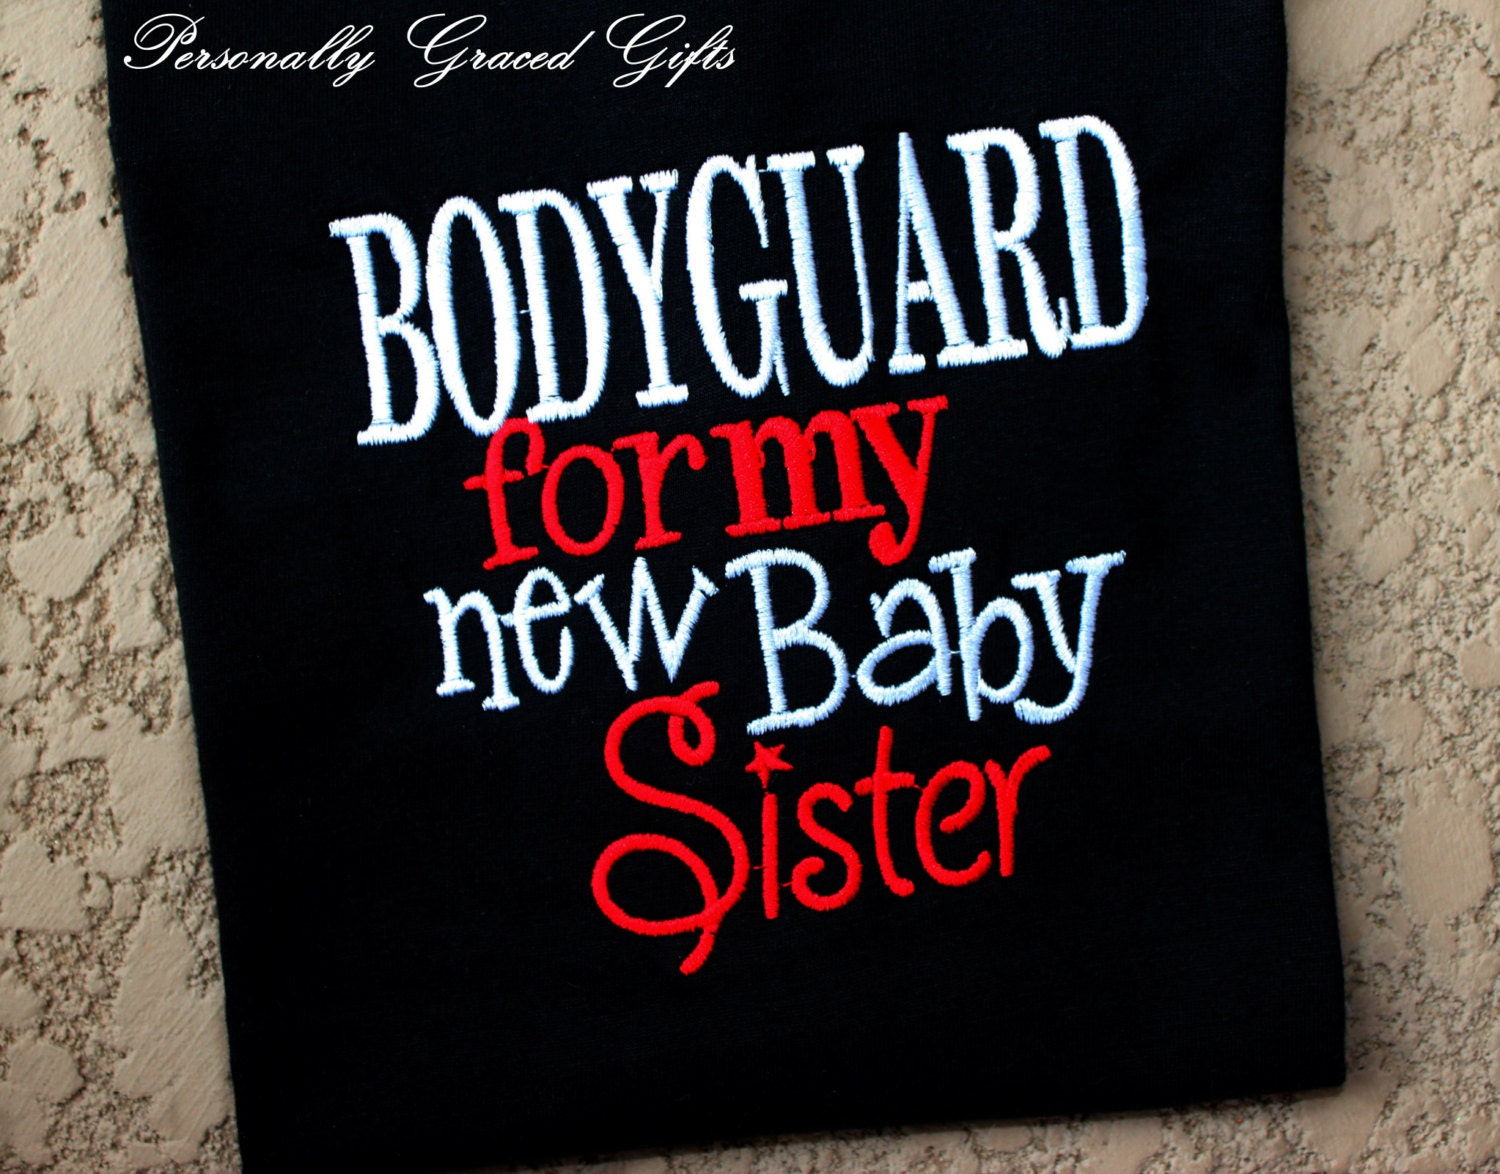 Big Brother or Big Sister Bodyguard For My New Baby Sister